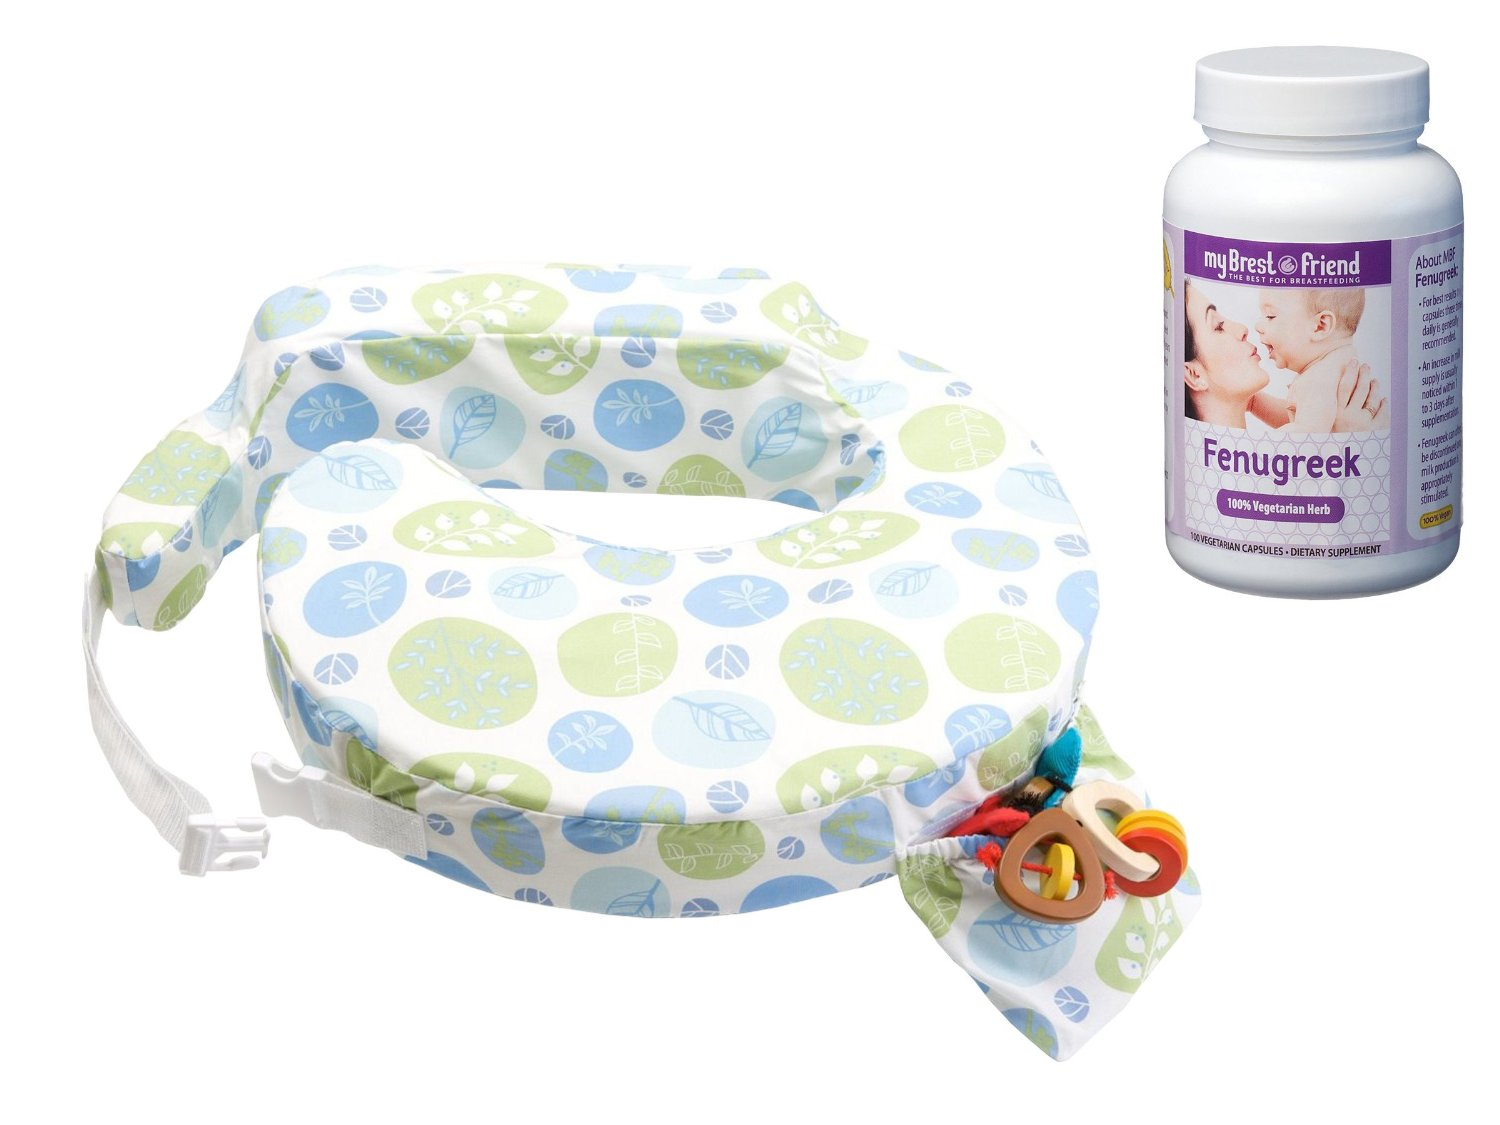 My Brest Friend Original Nursing Pillow with Fenugreek Capsules, Sunburst by My Brest Friend